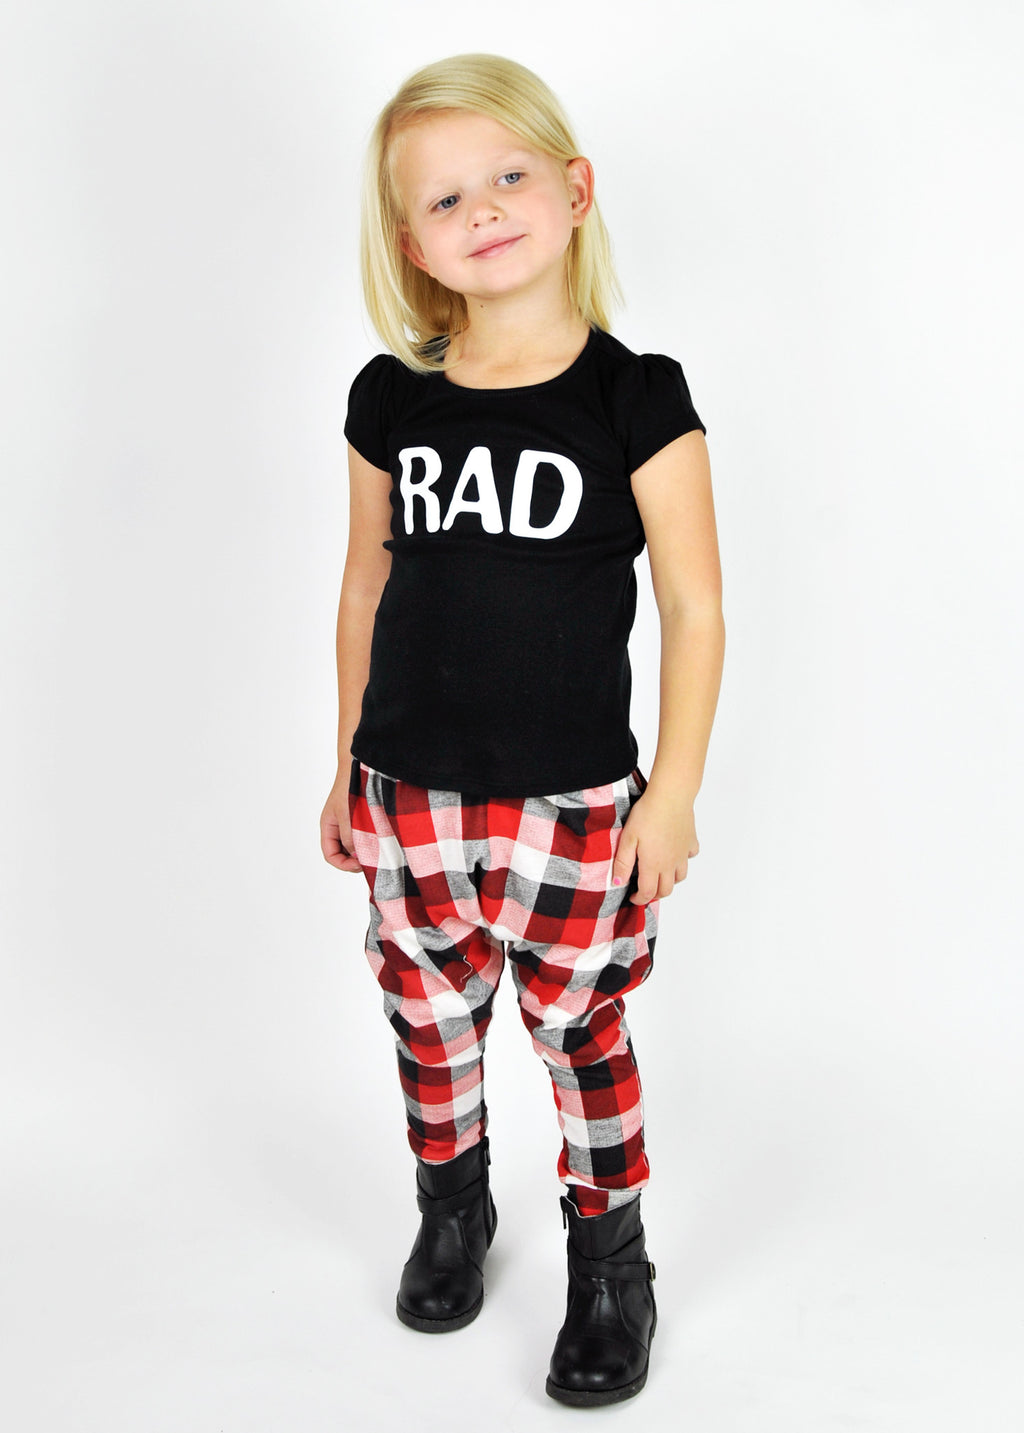 GIRL'S TEE | RAD | Black Puff Sleeve